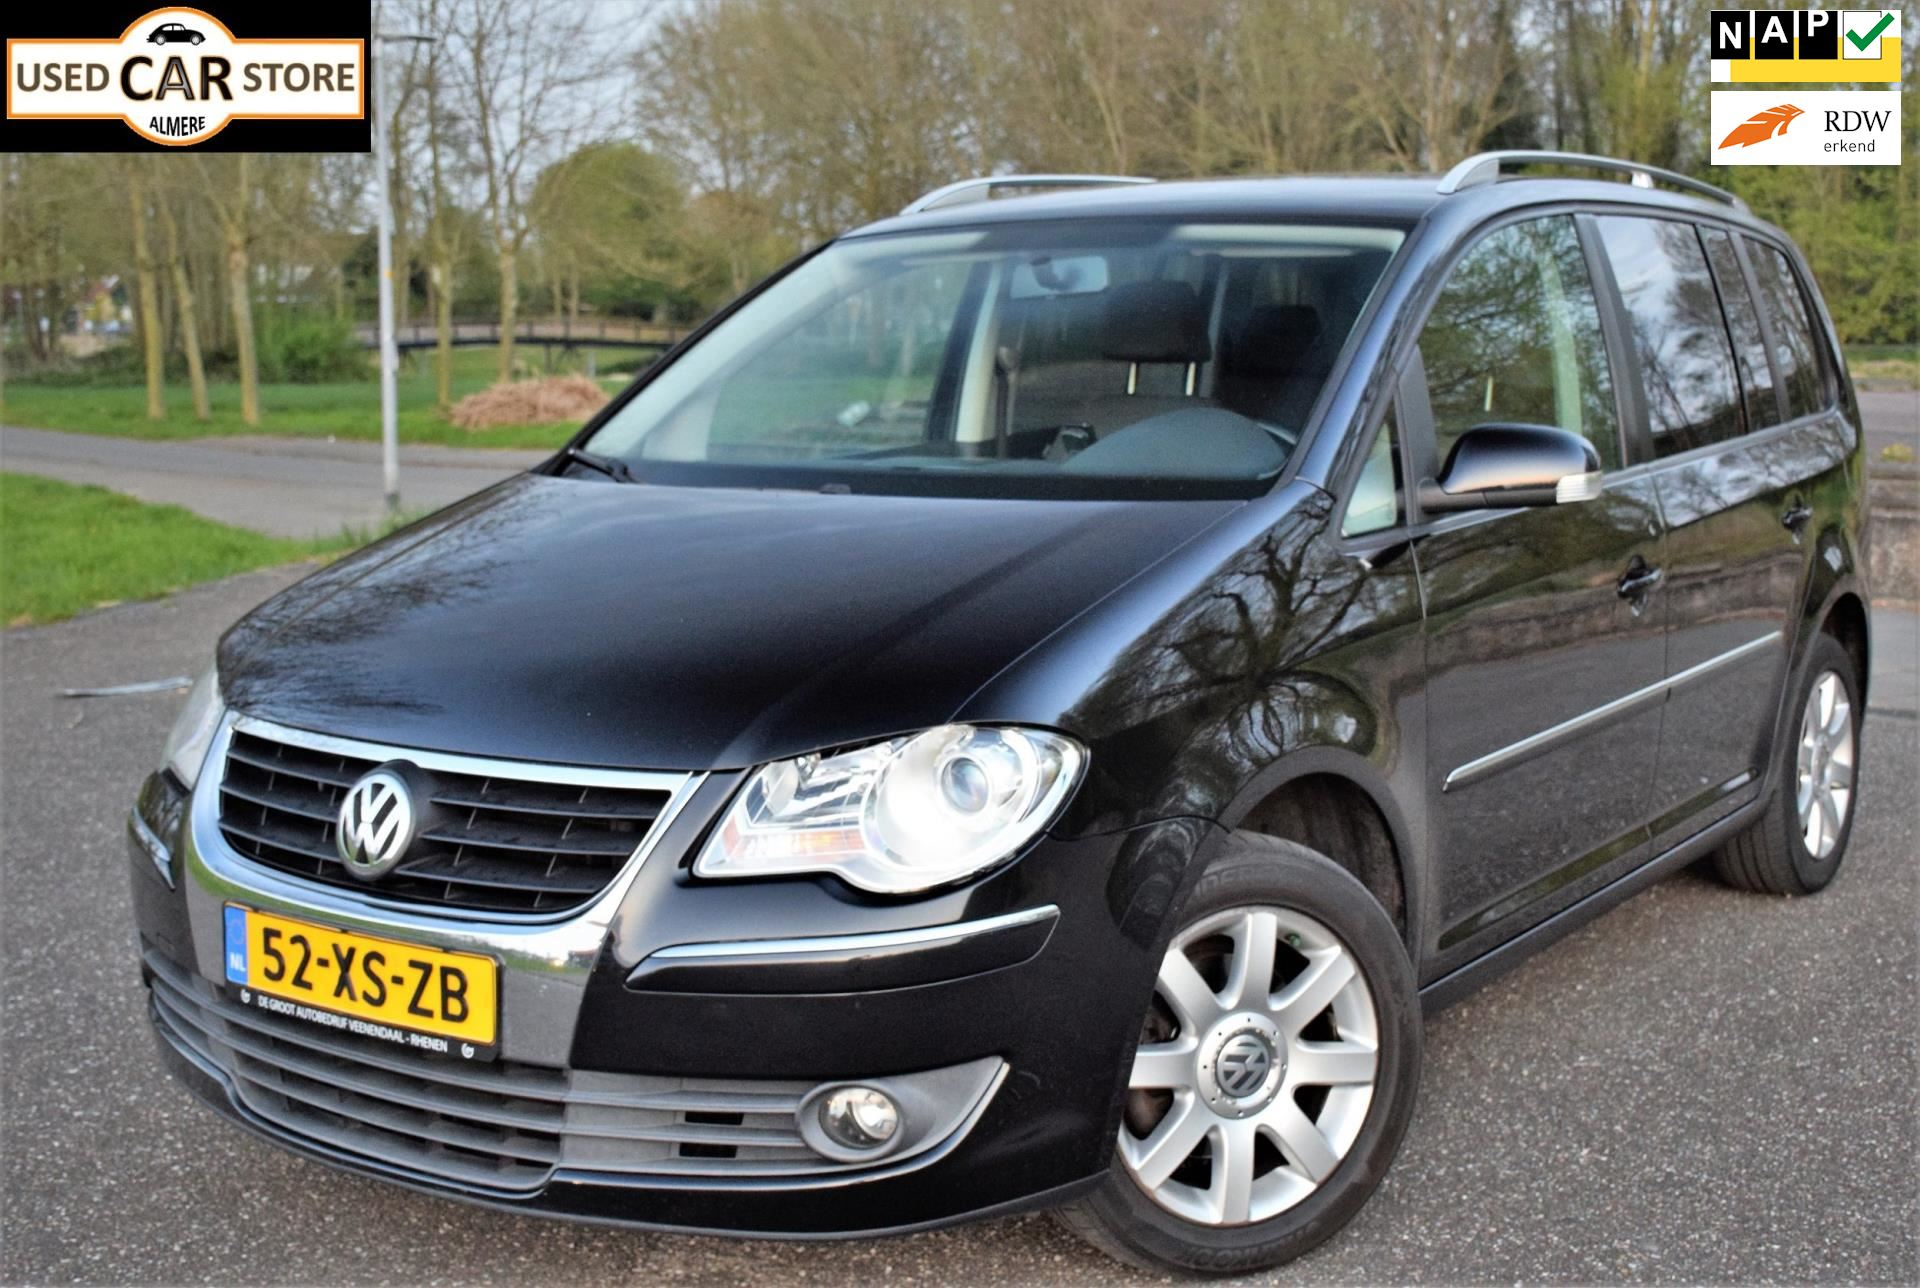 Volkswagen Touran occasion - Used Car Store Almere